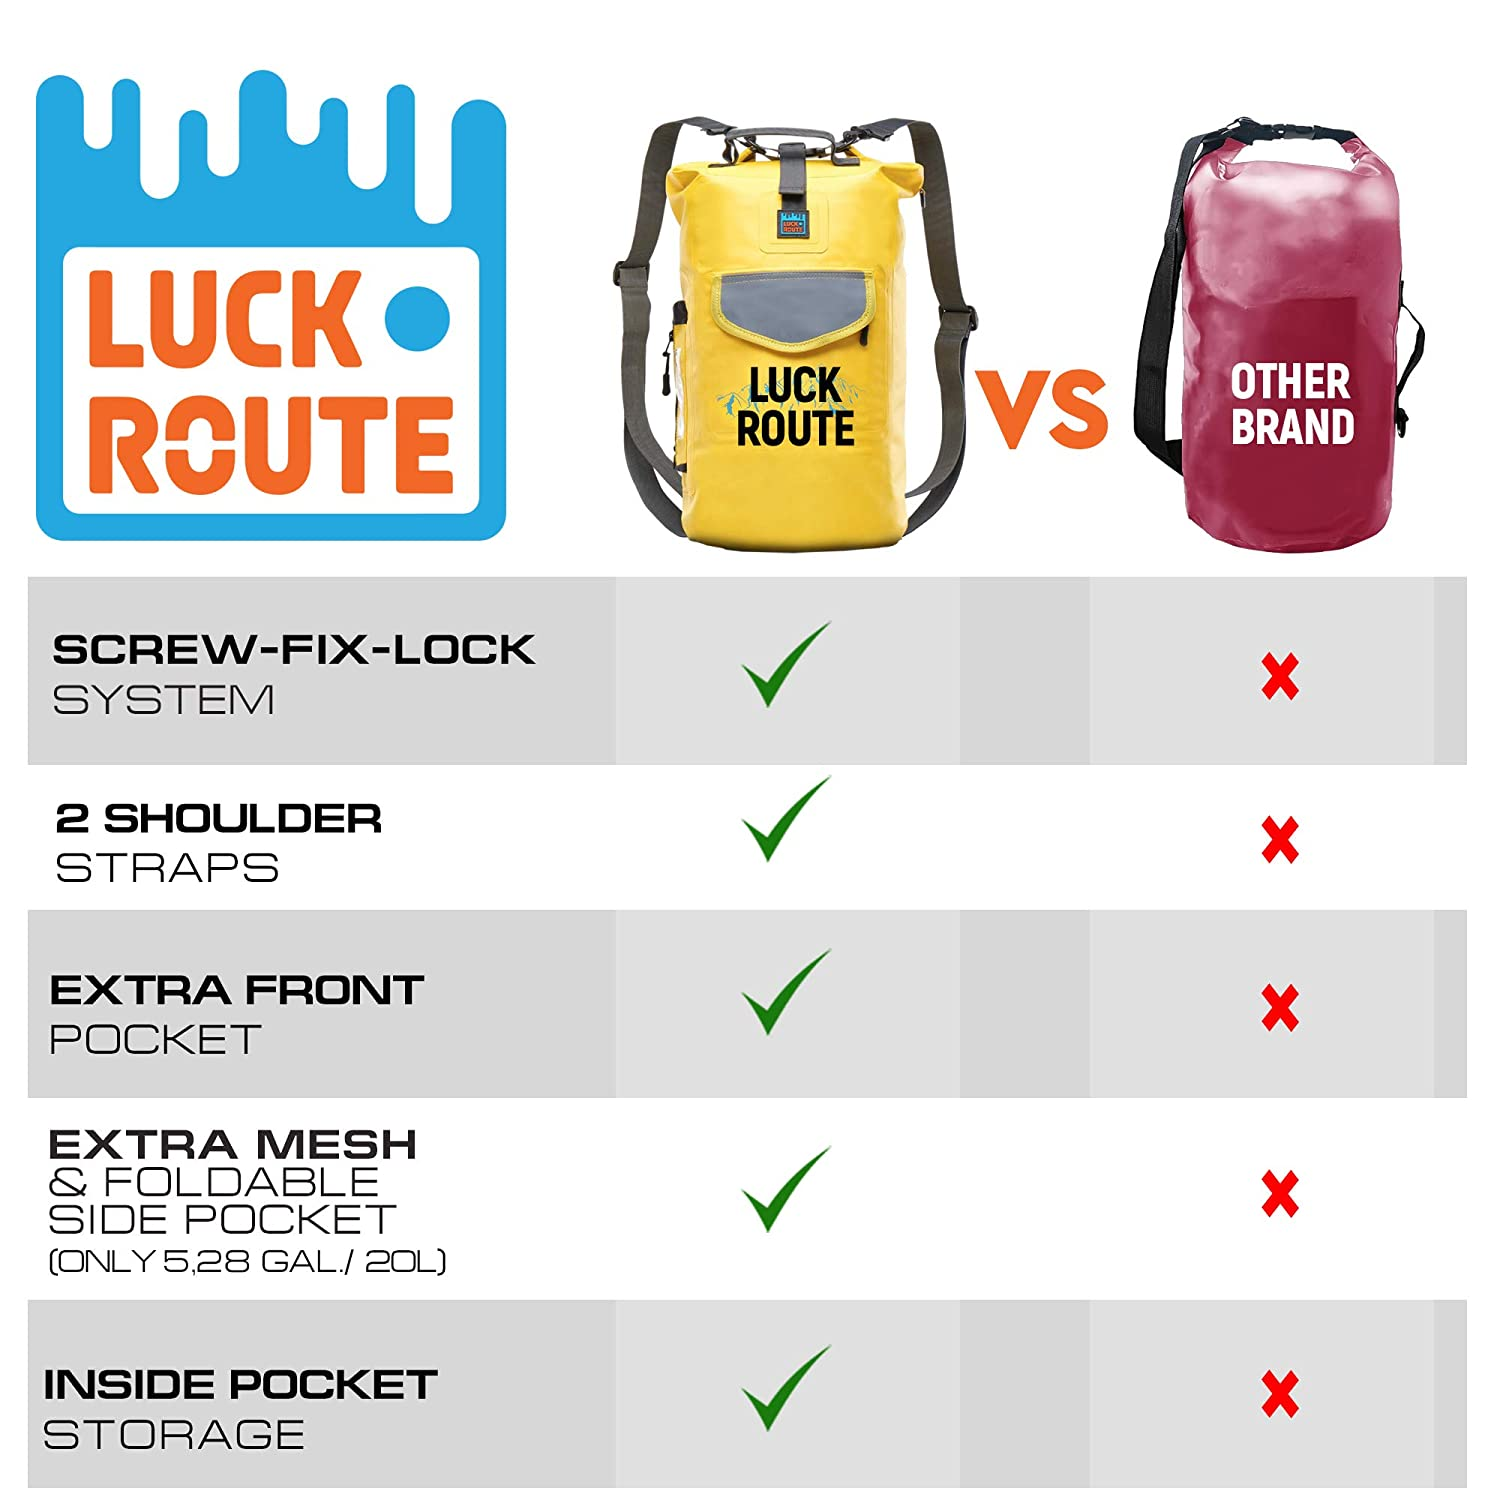 ... Luck route Waterproof Dry Bag with Backpack Straps and Pockets -  Floating DryBag for Beach ... c9b4728c89b6e